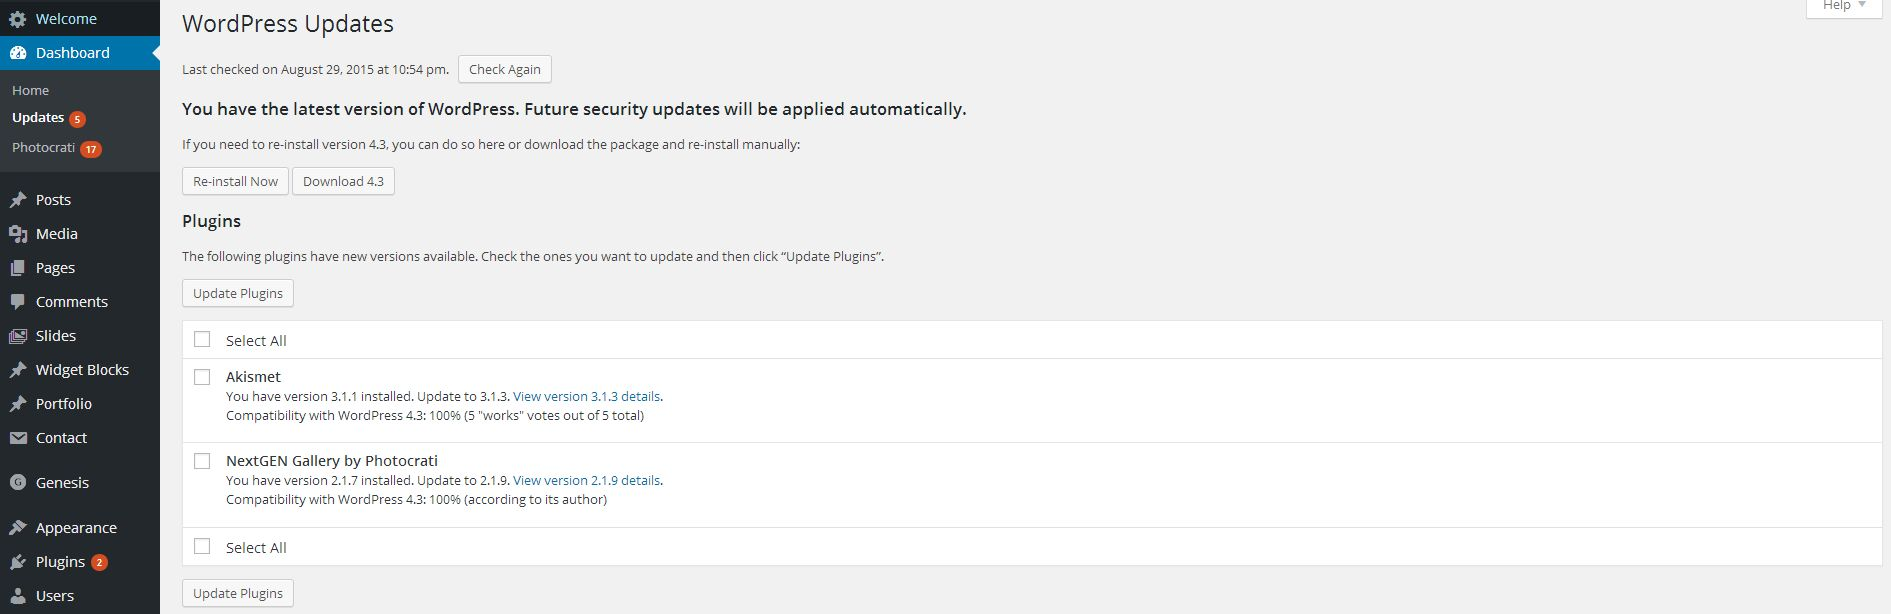 Plugins are were the most issues occur regarding updates. Make sure you have a back up of the previous version.